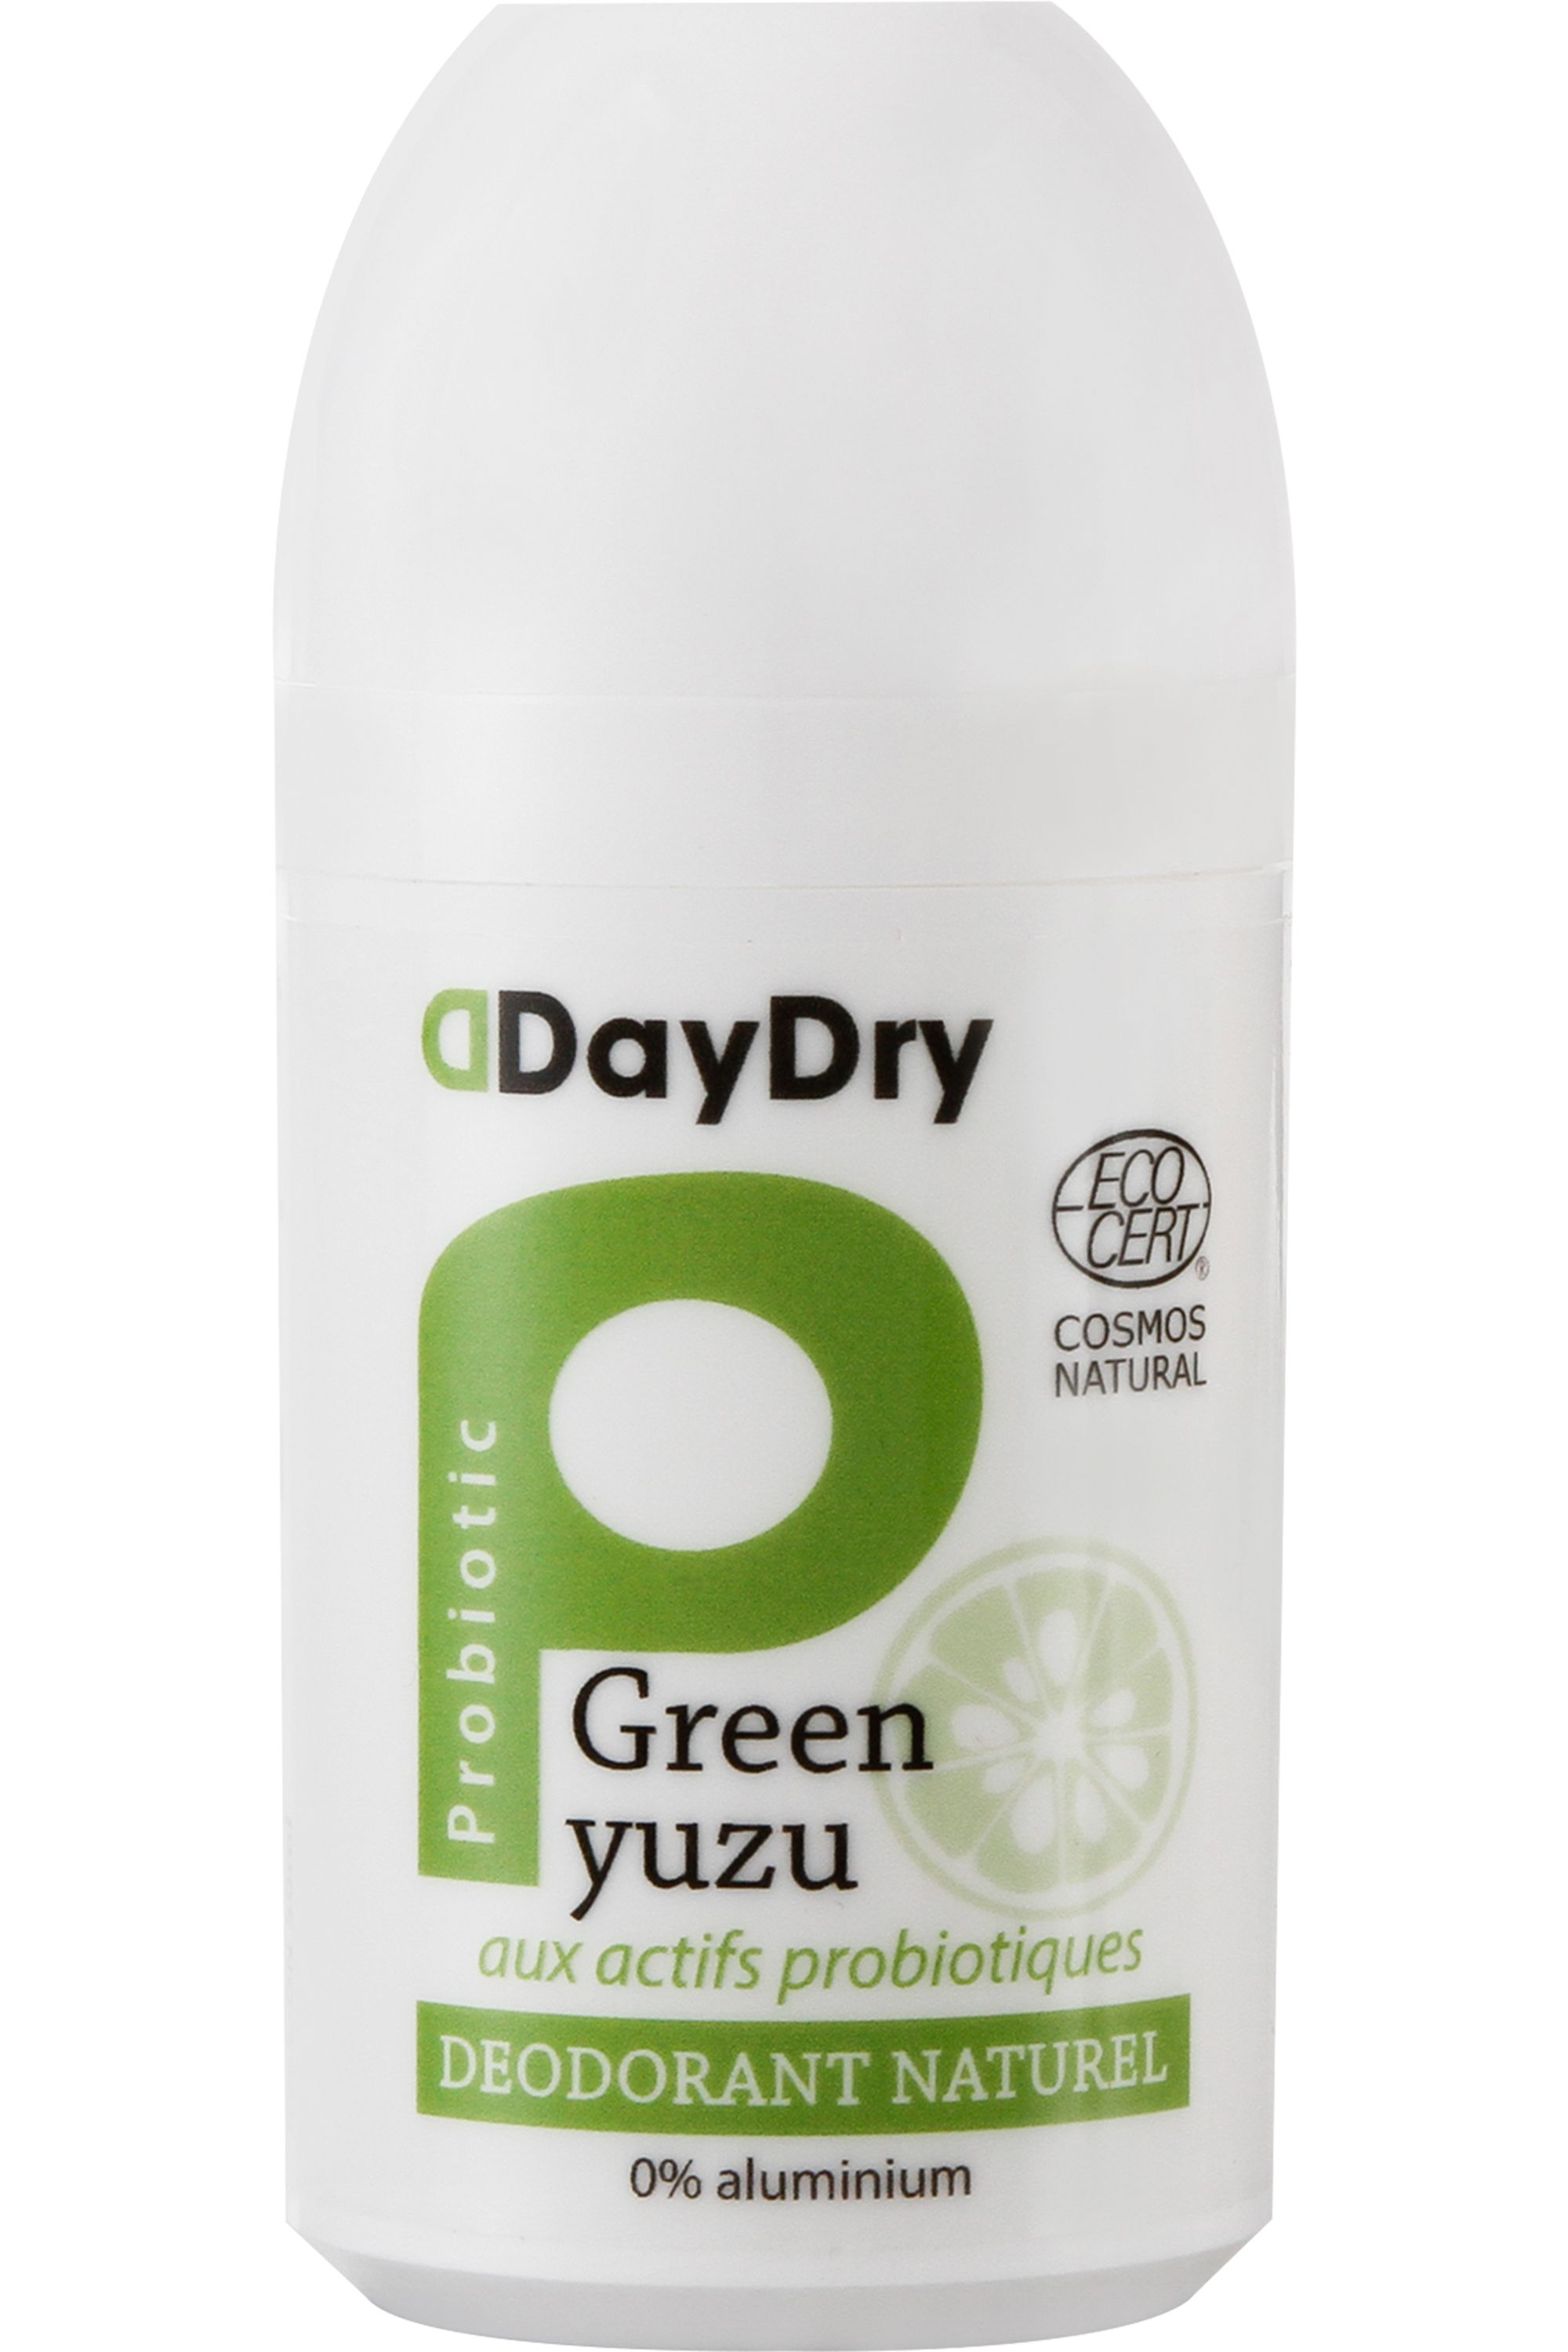 Blissim : Daydry probiotics by Biosme - Déodorant Naturel Green Yuzu - Déodorant Naturel Green Yuzu